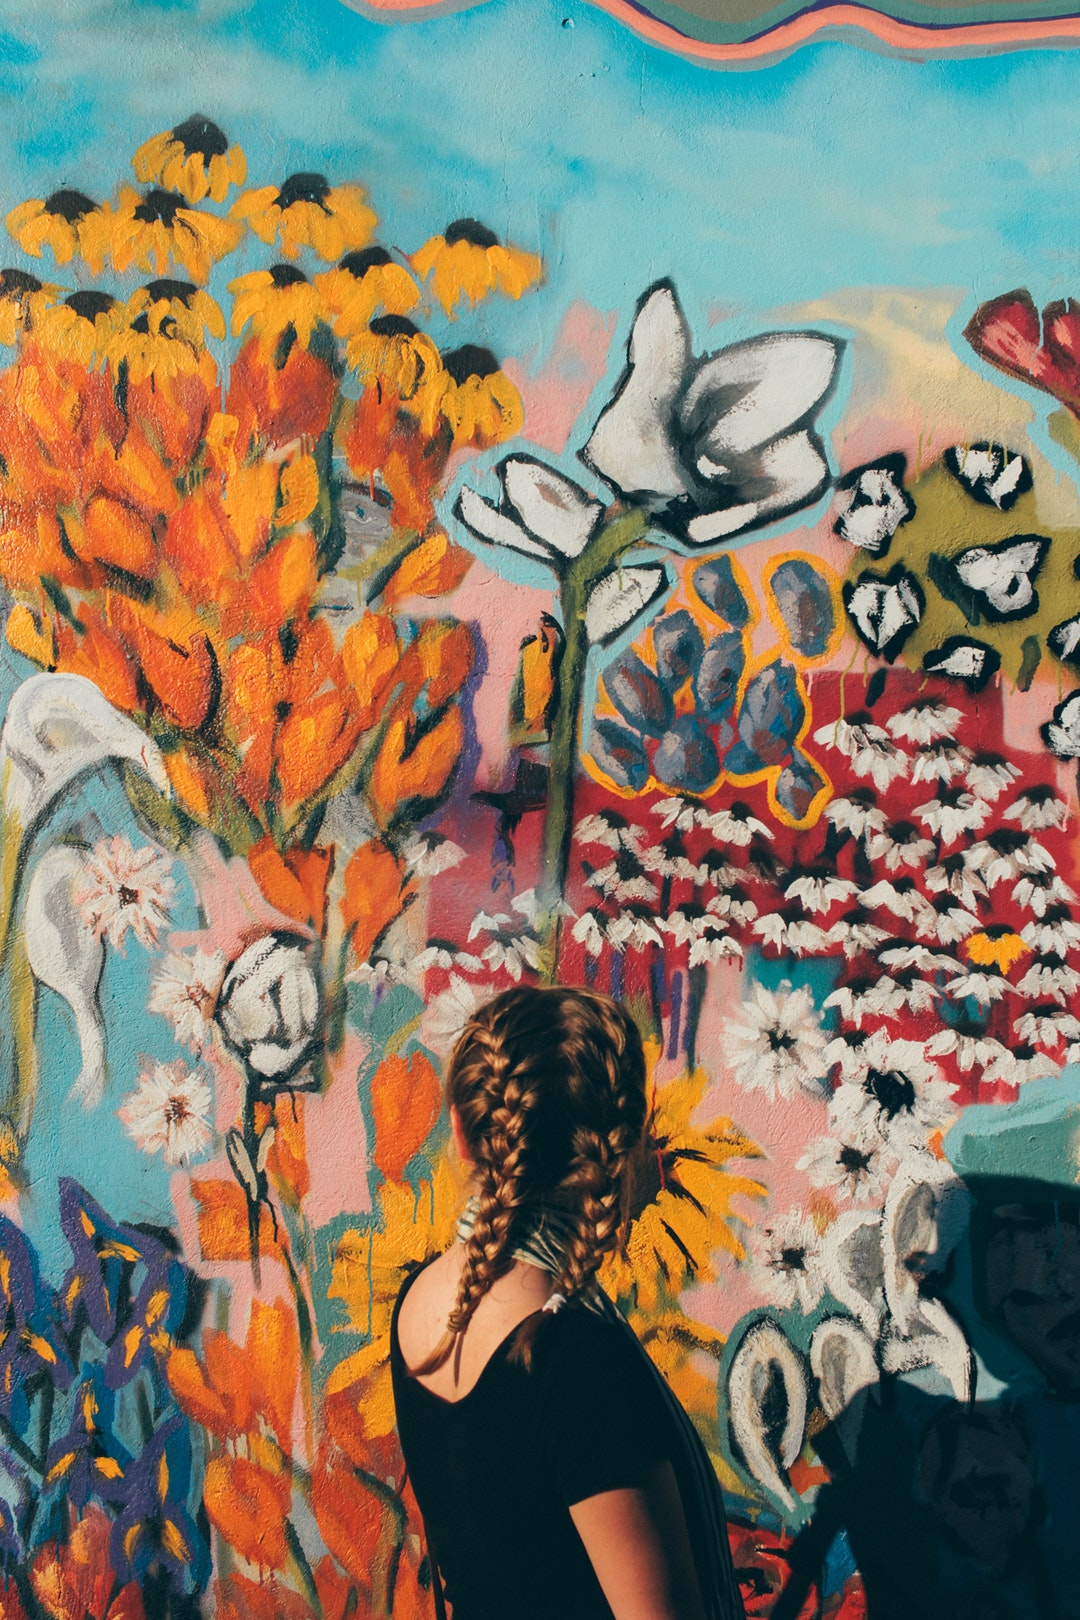 Young woman with plaited hair looking at colorful graffiti artwork in Nashville